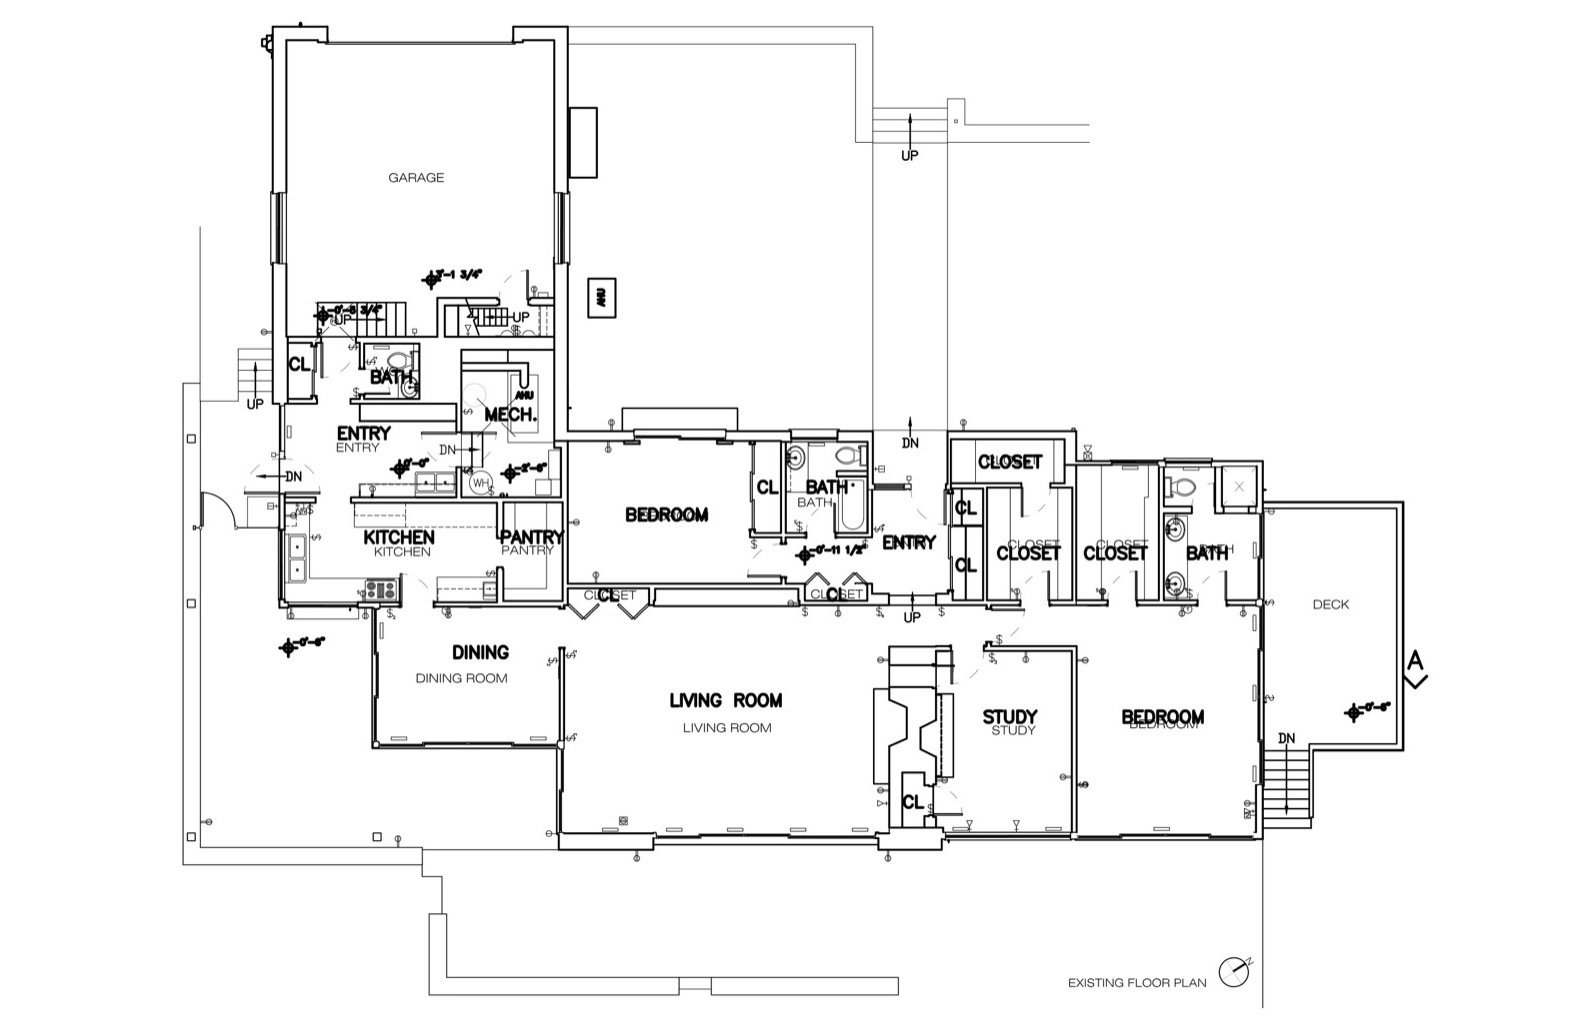 Floor plan of the original house.